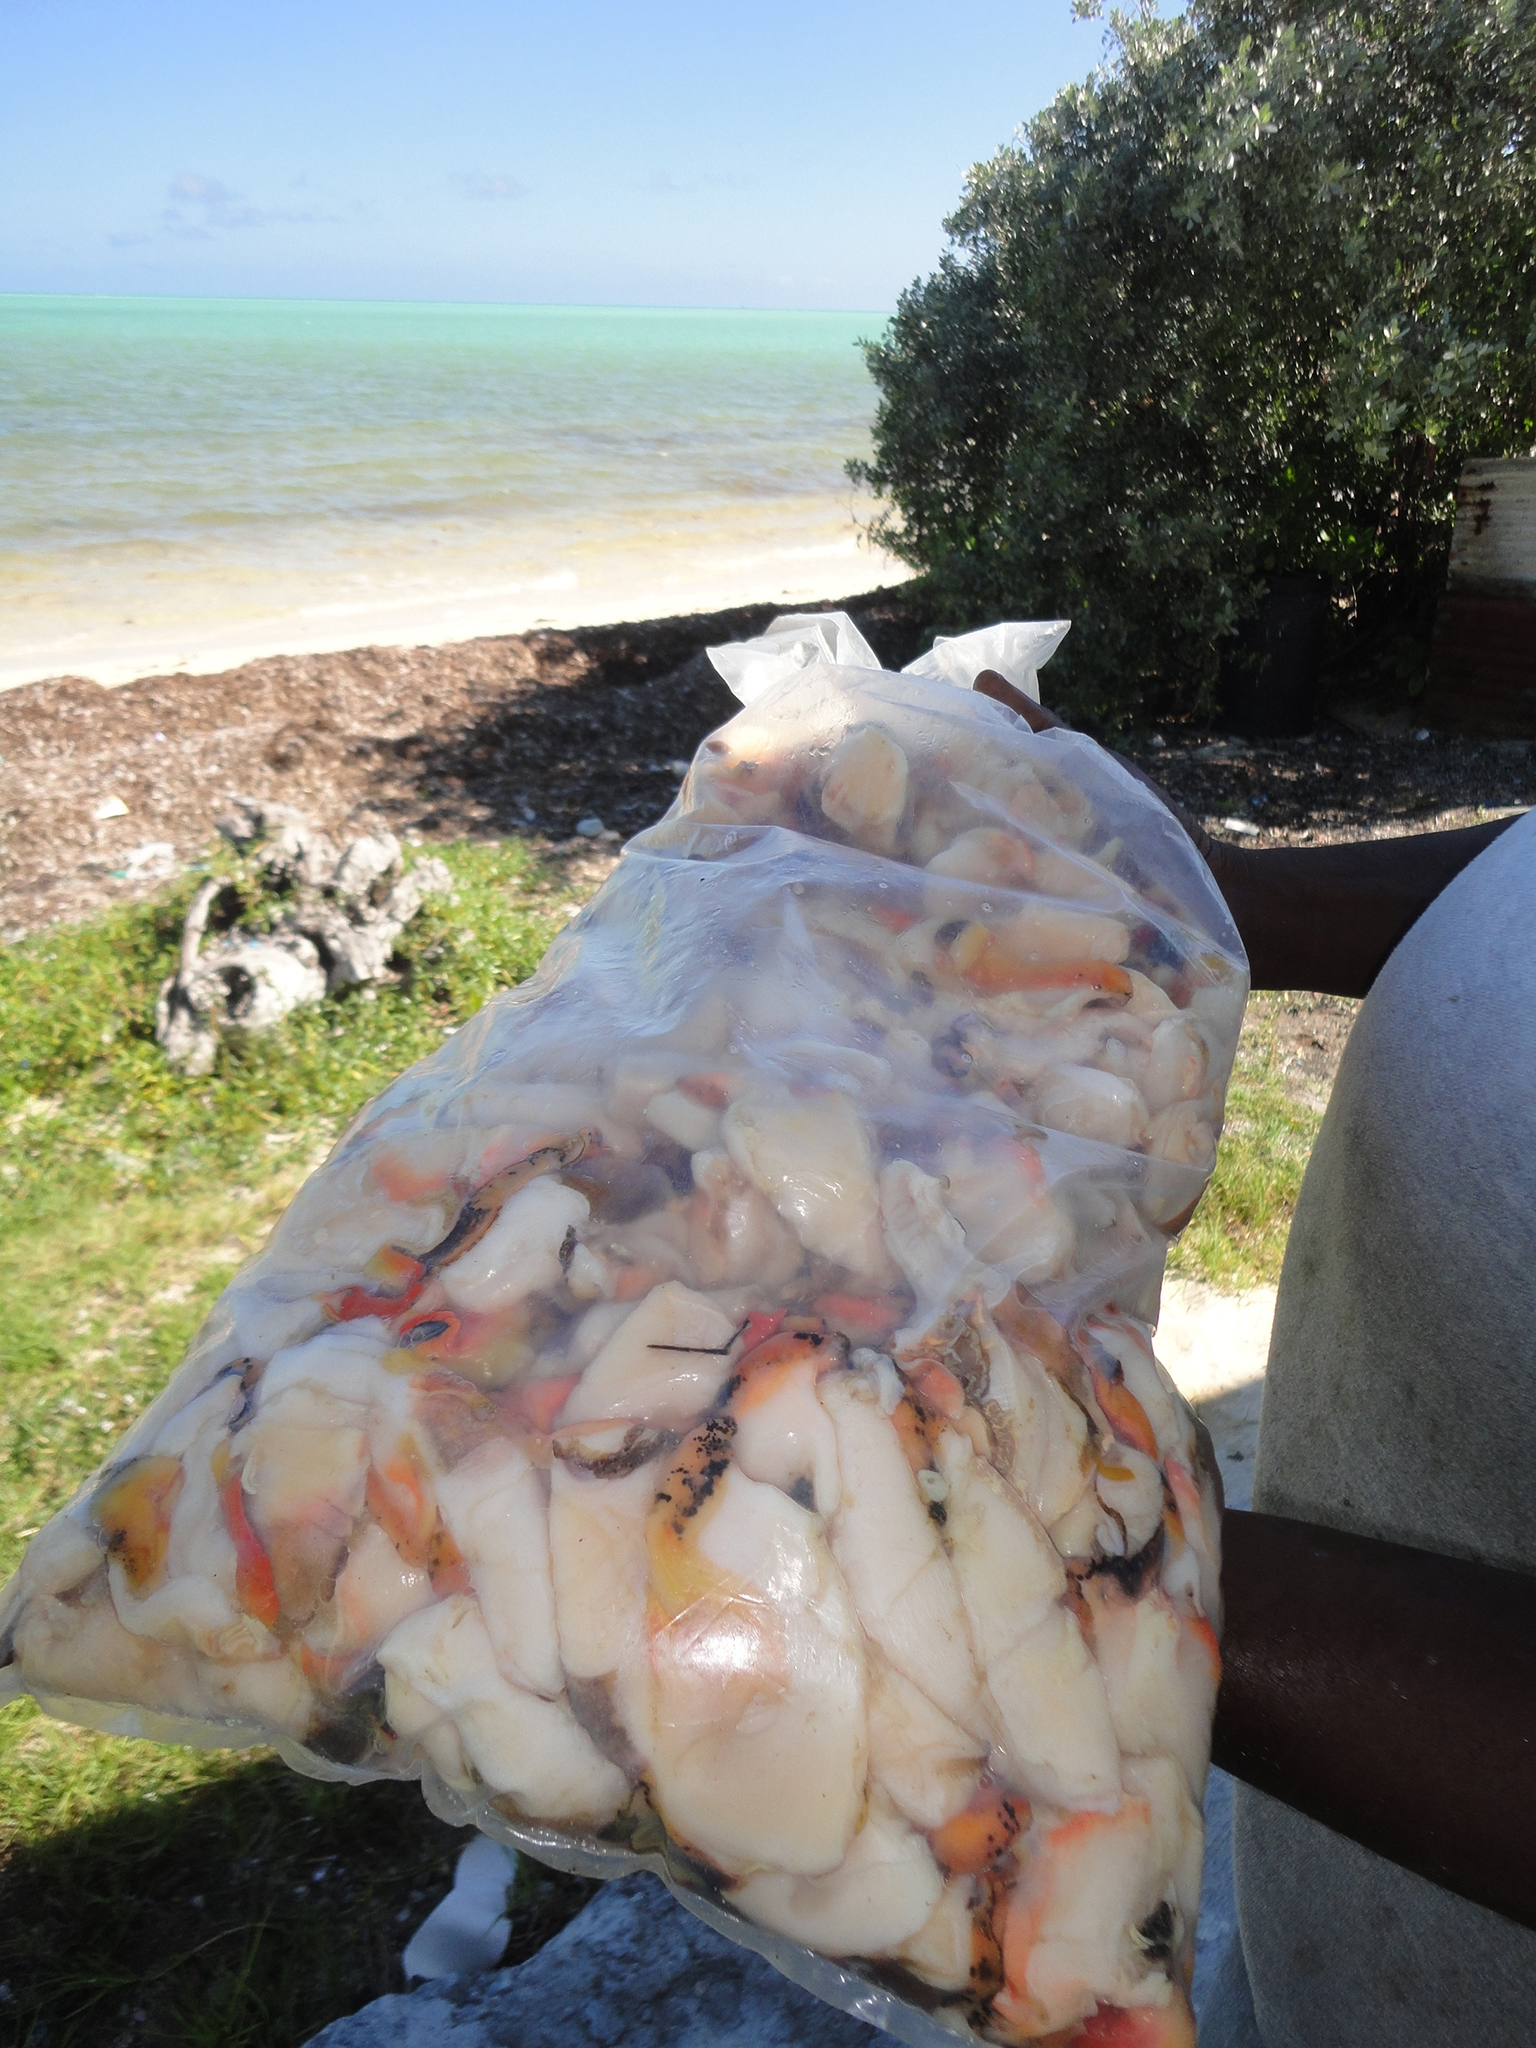 This bag of fresh conch was harvested by Leo Forbes and is destined for Nassau, the only market Forbes has access to at the moment. Photograph by David Brian Butvill